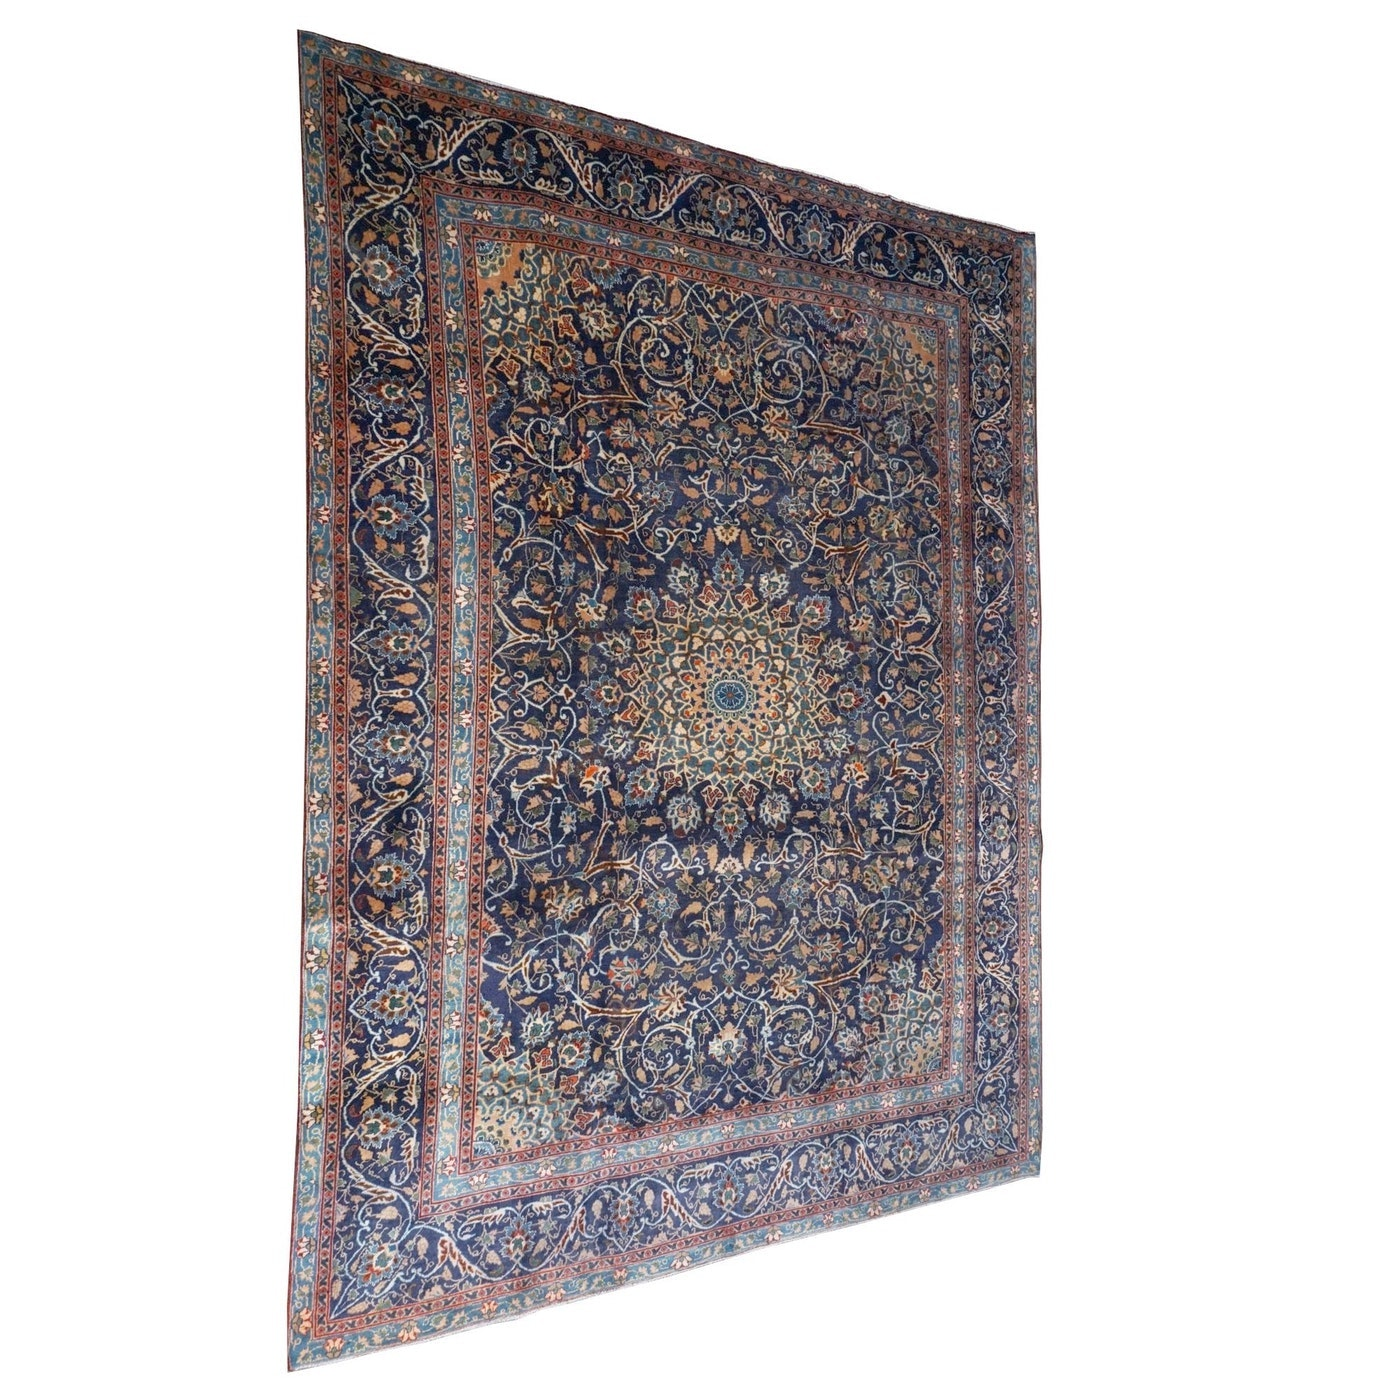 Hand-Knotted Kashmir Wool Room Sized Rug